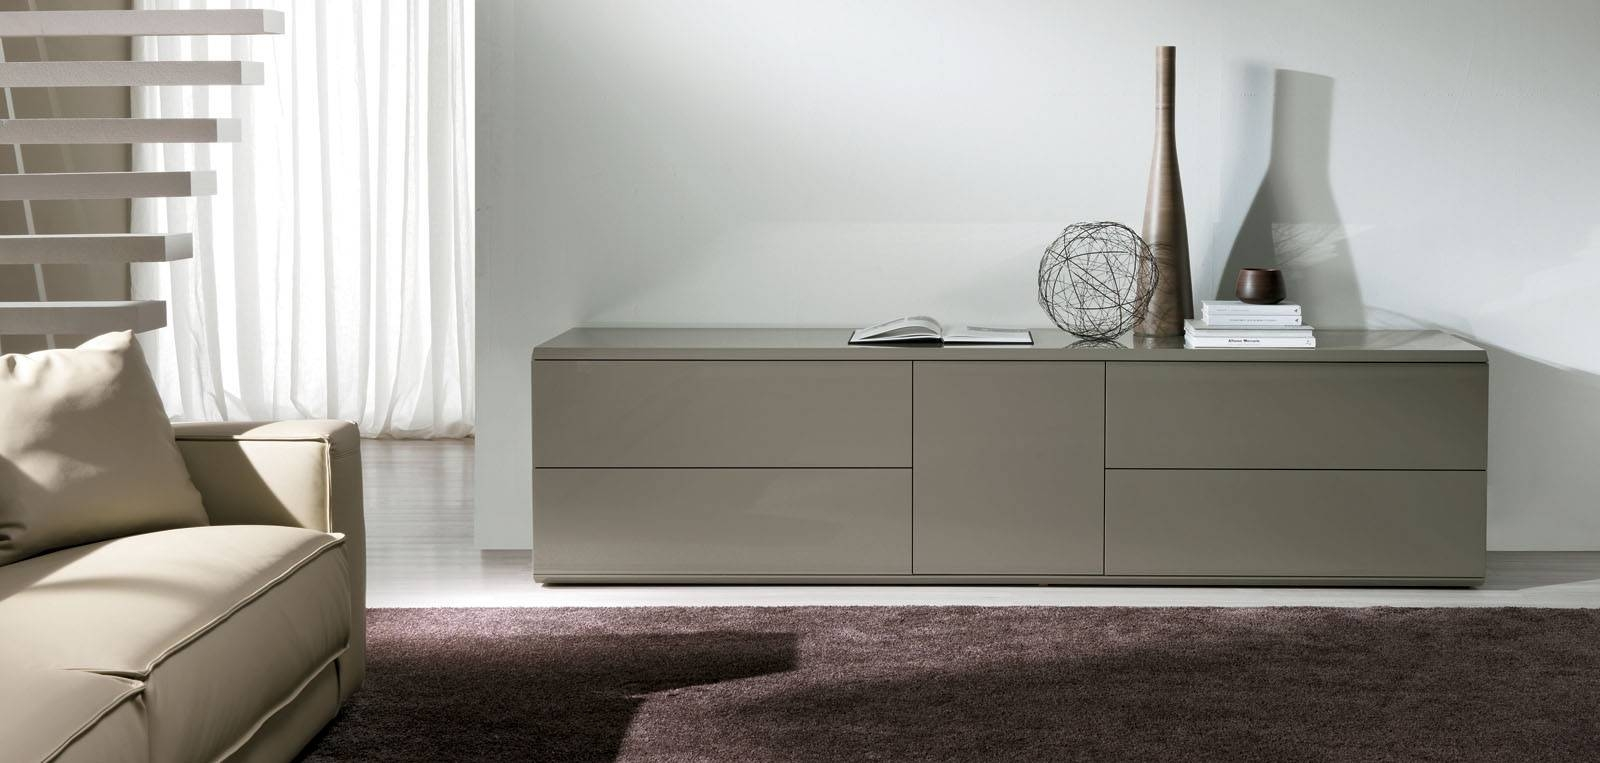 Tremendous Modern Dark Grey Sideboard Design With Two Cabinet inside Modern Living Room Sideboards (Image 29 of 30)